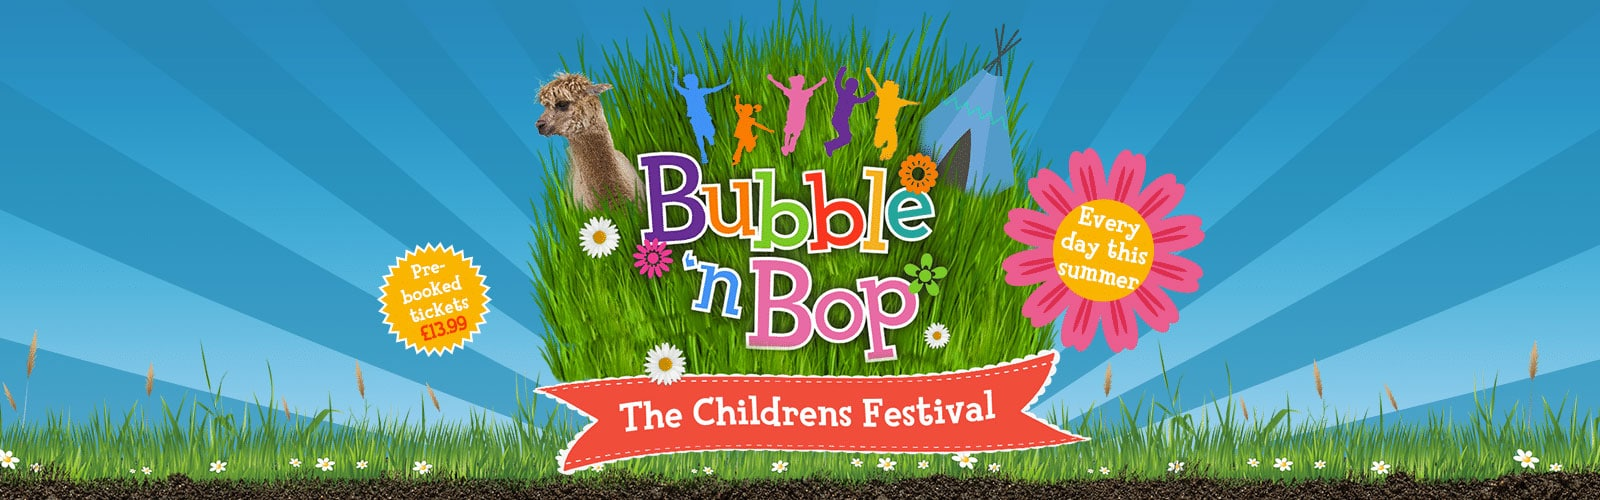 Bubble 'n Bop 2020 - Only £13.99 pre-booking